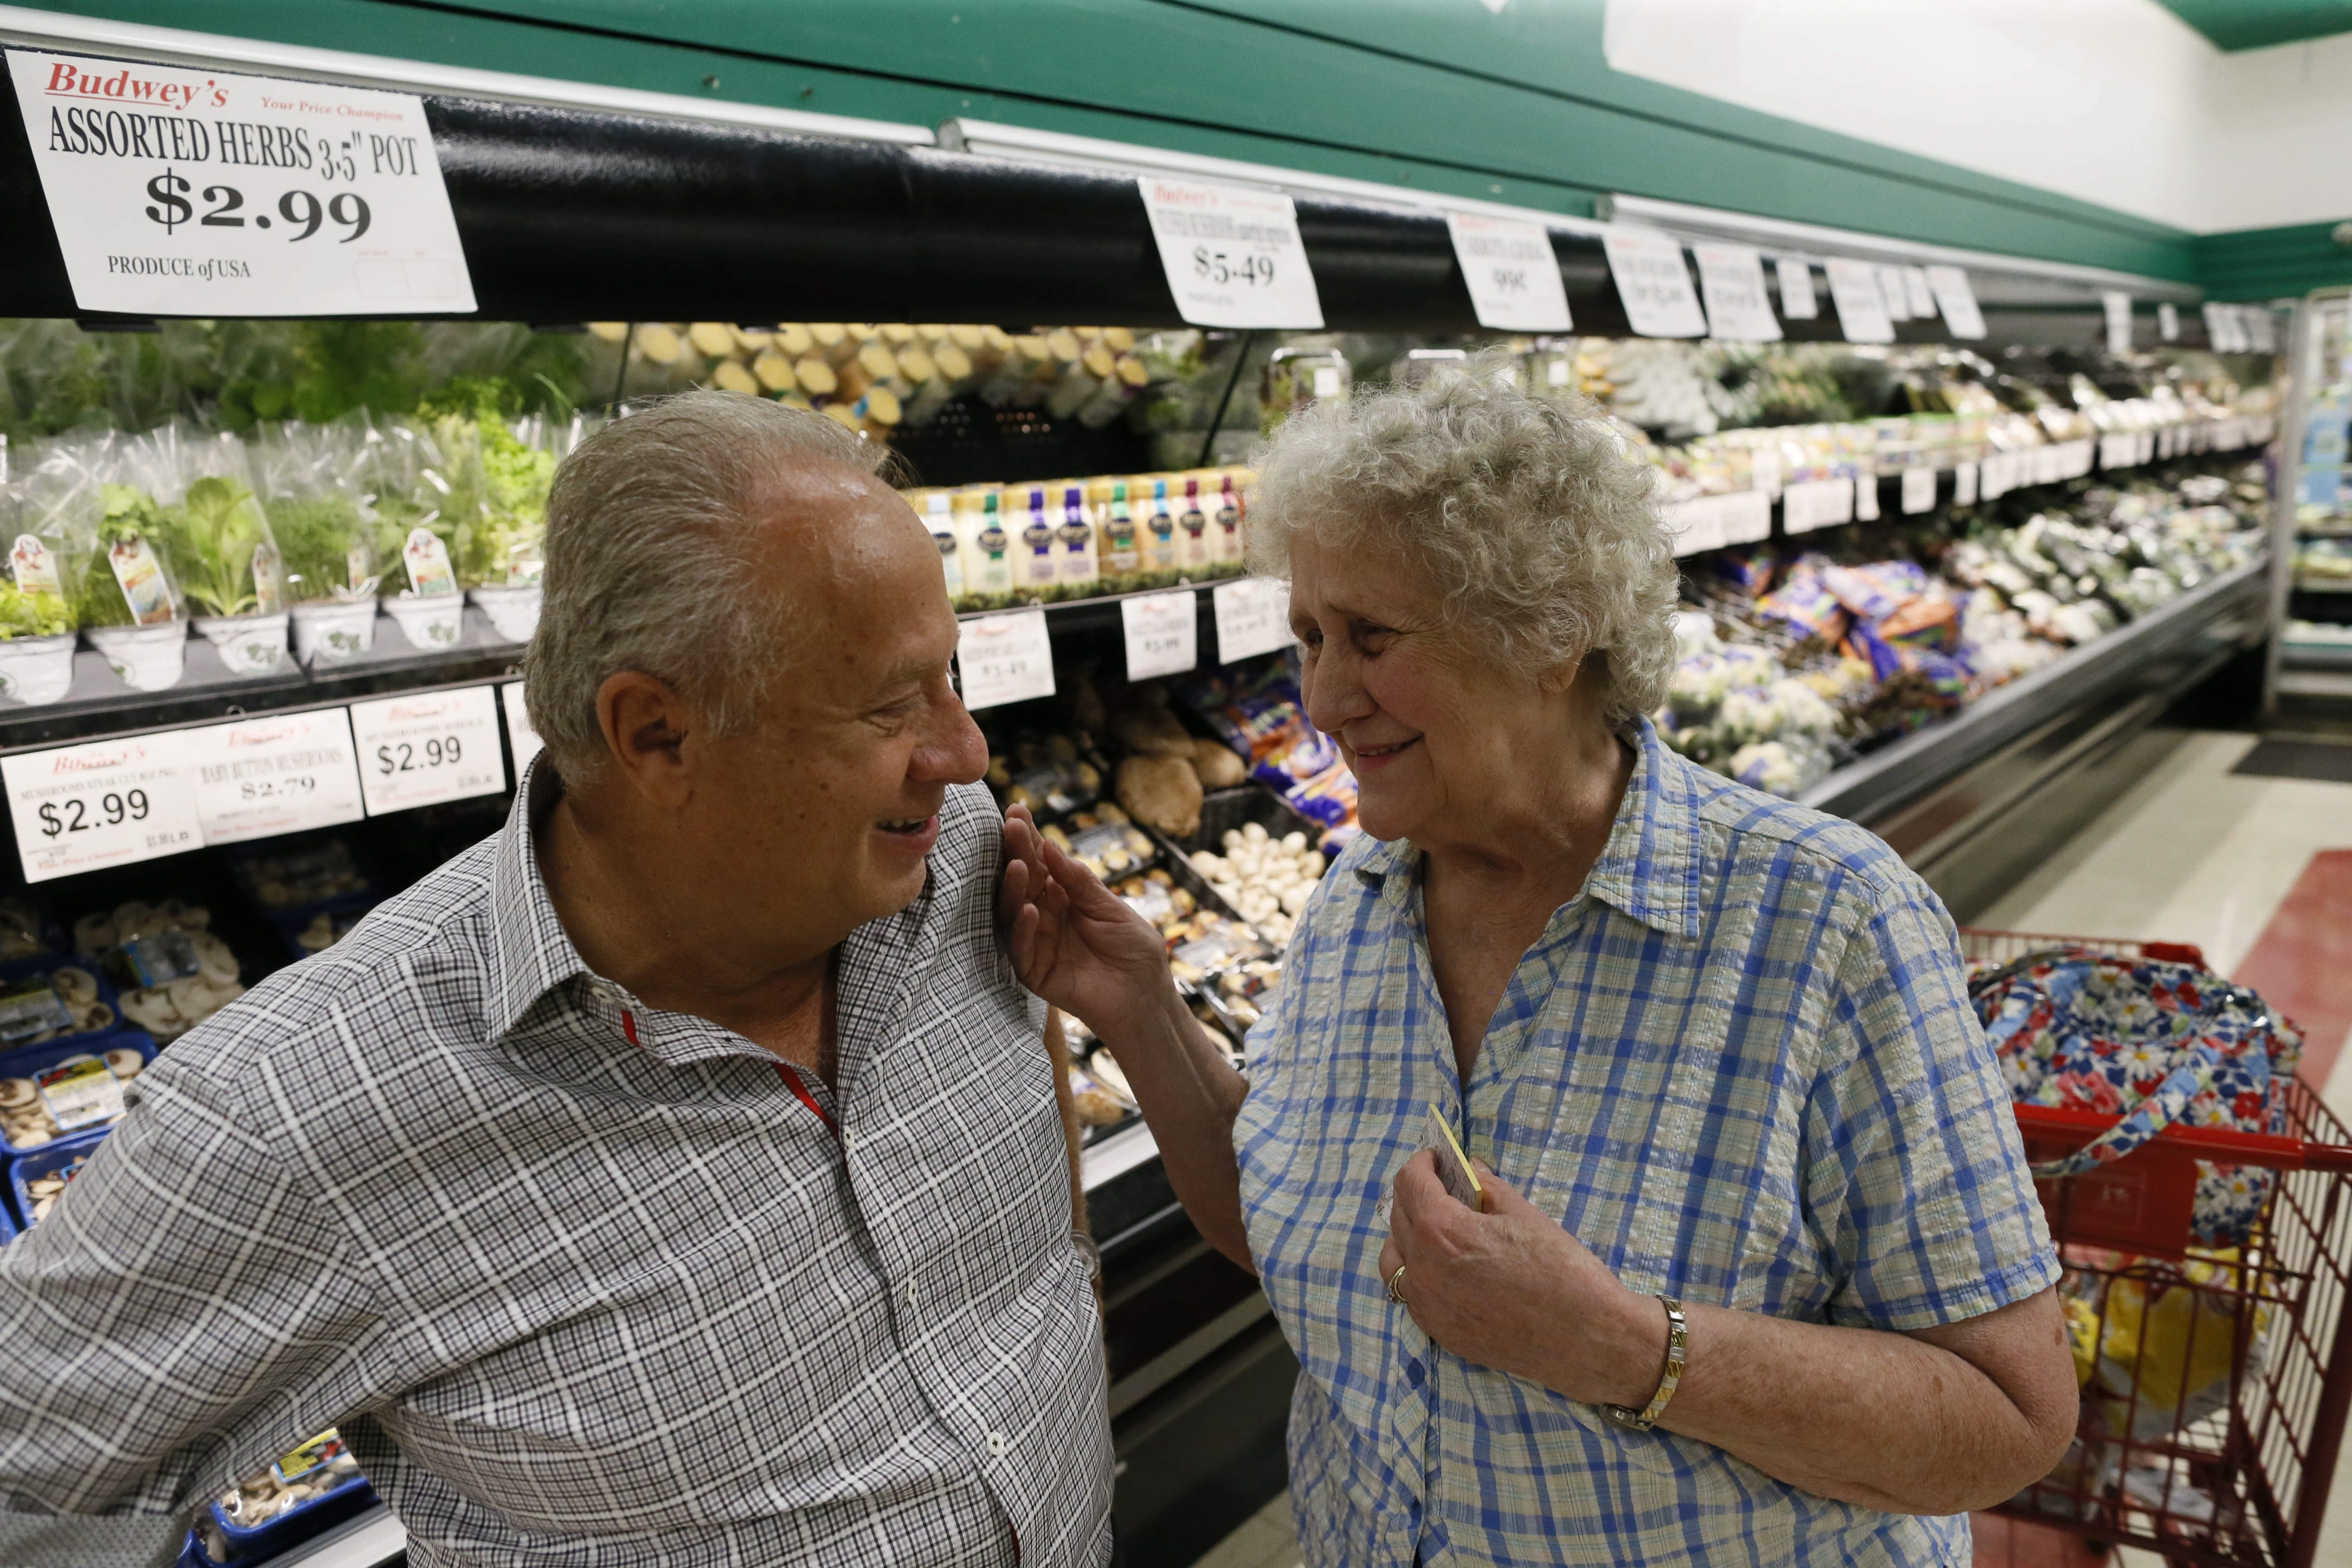 Frank Budwey, owner of Budwey's Supermarket since 1974, stops for a chat with long-time customer Marge Holesko of North Tonawanda, who has been shopping at the store for more than 54 years (when Budwey's parents ran it at another location down the road,) Tuesday, May 26, 2015.  (Derek Gee/Buffalo News)